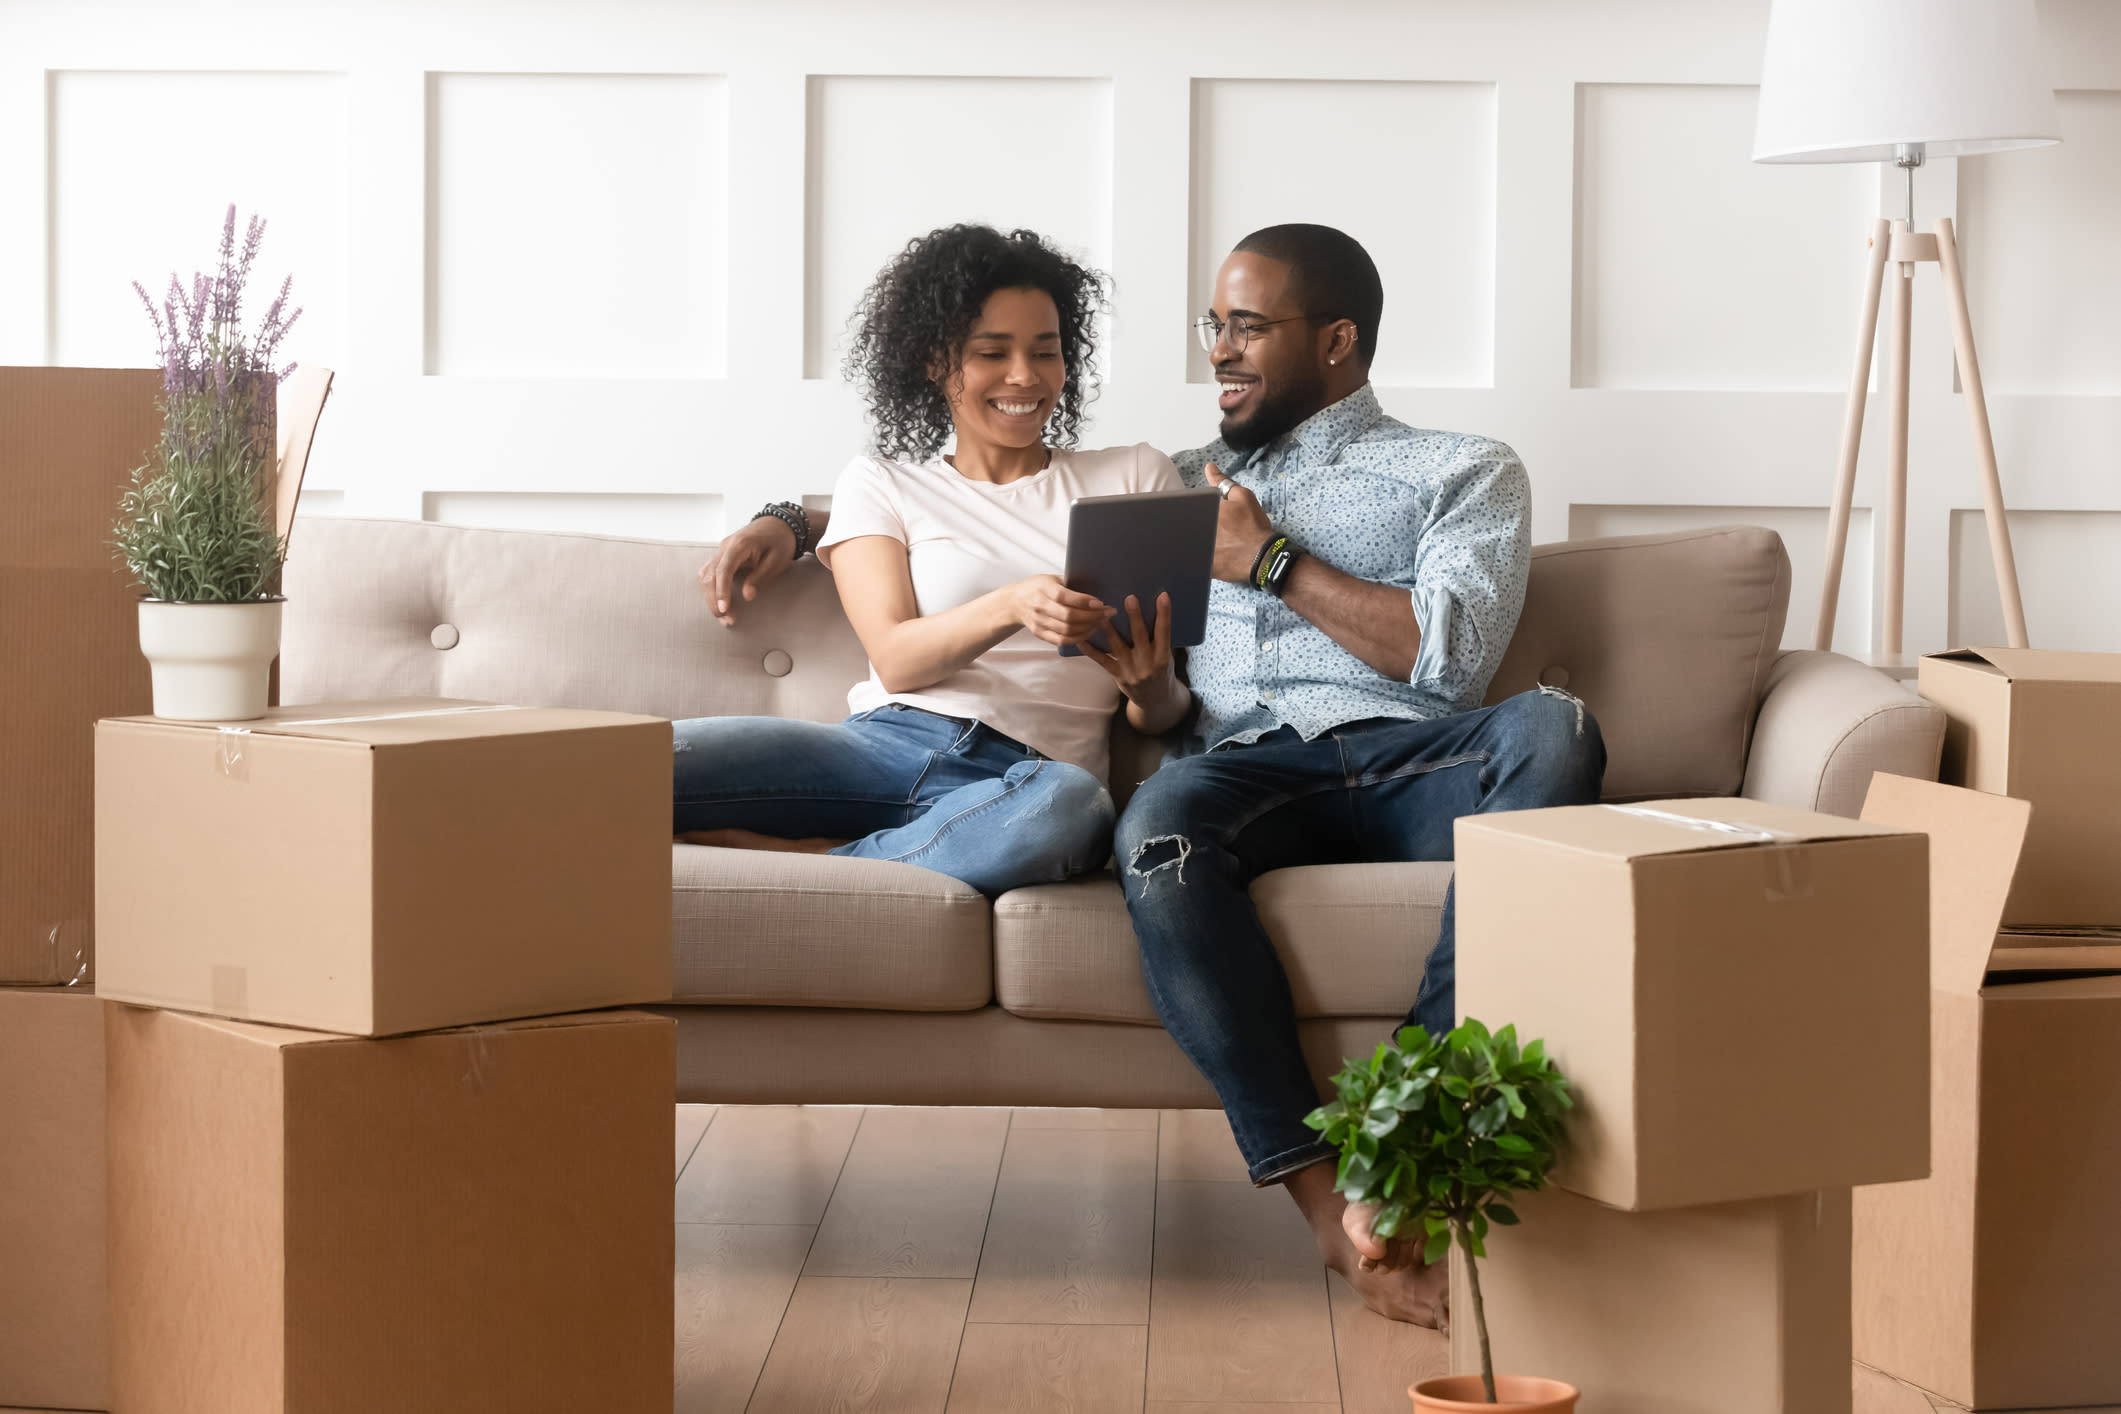 Couple Sits on a Couch Looking at a Tablet